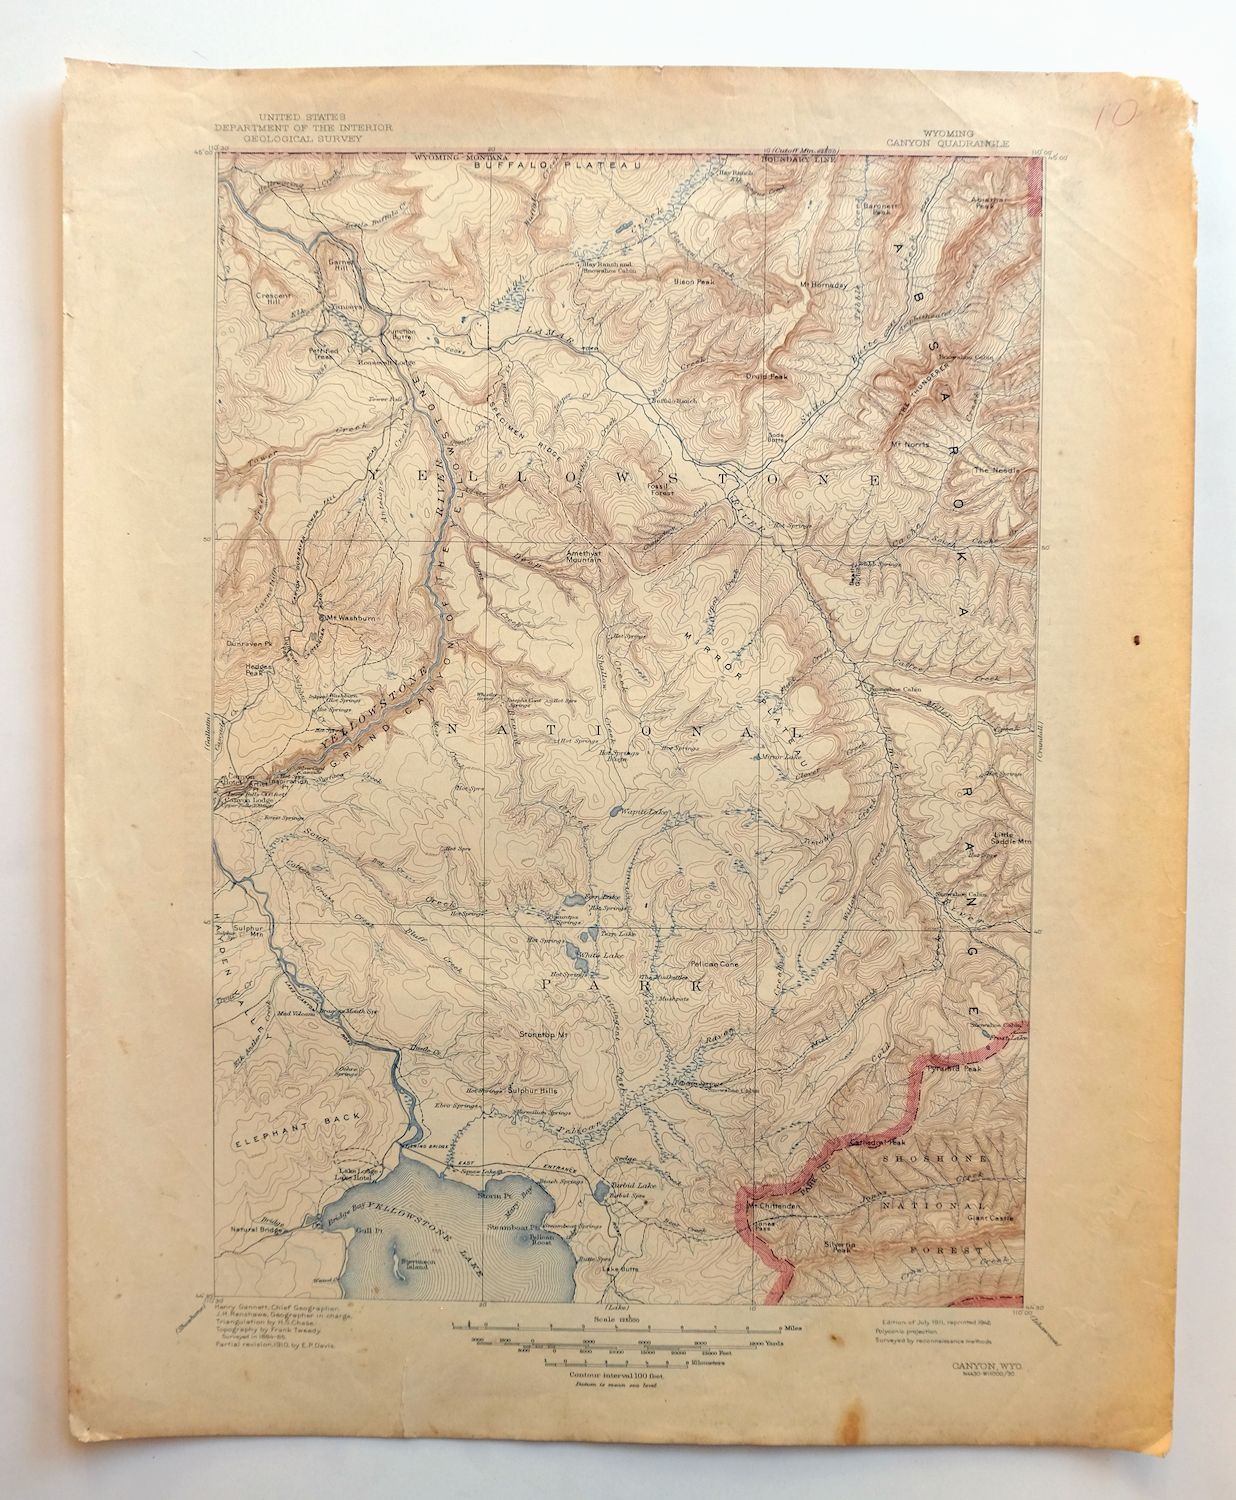 Yellowstone National Park Topographic Map.Canyon Wyoming Vintage Usgs Topographic Map 1911 Yellowstone